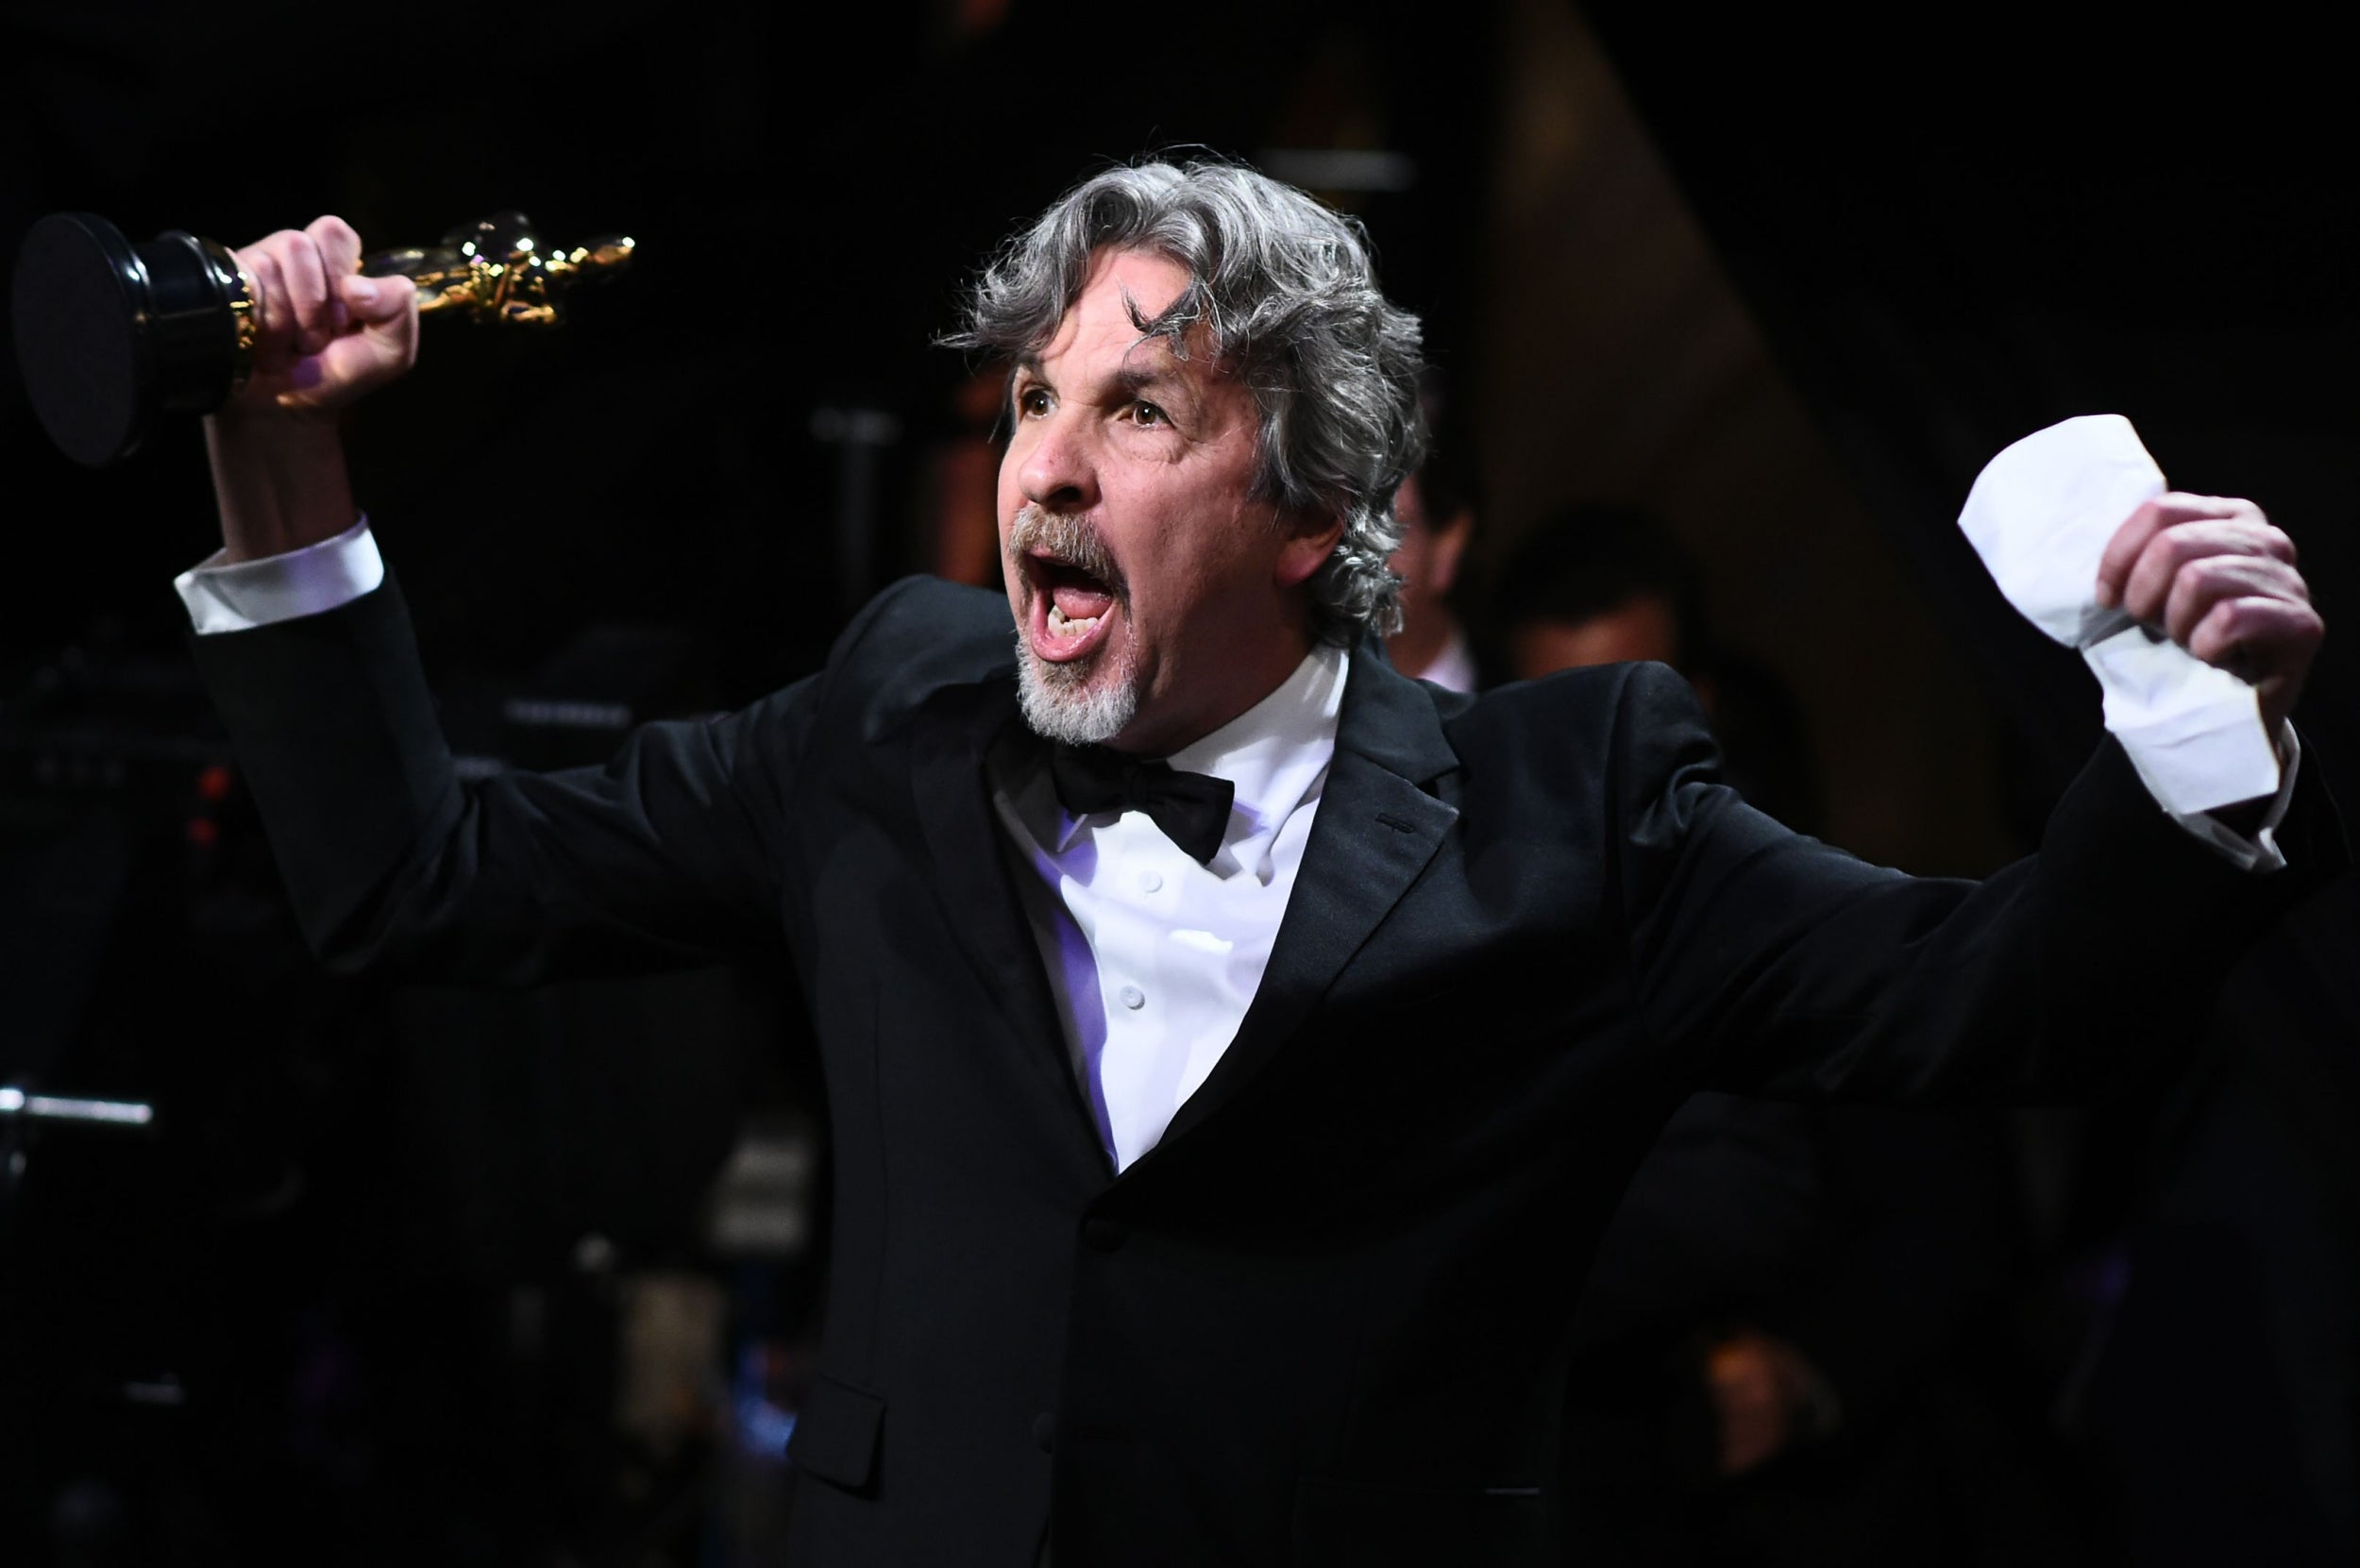 Oscars 2019 winners: Complete list as Green Book, Olivia Colman and